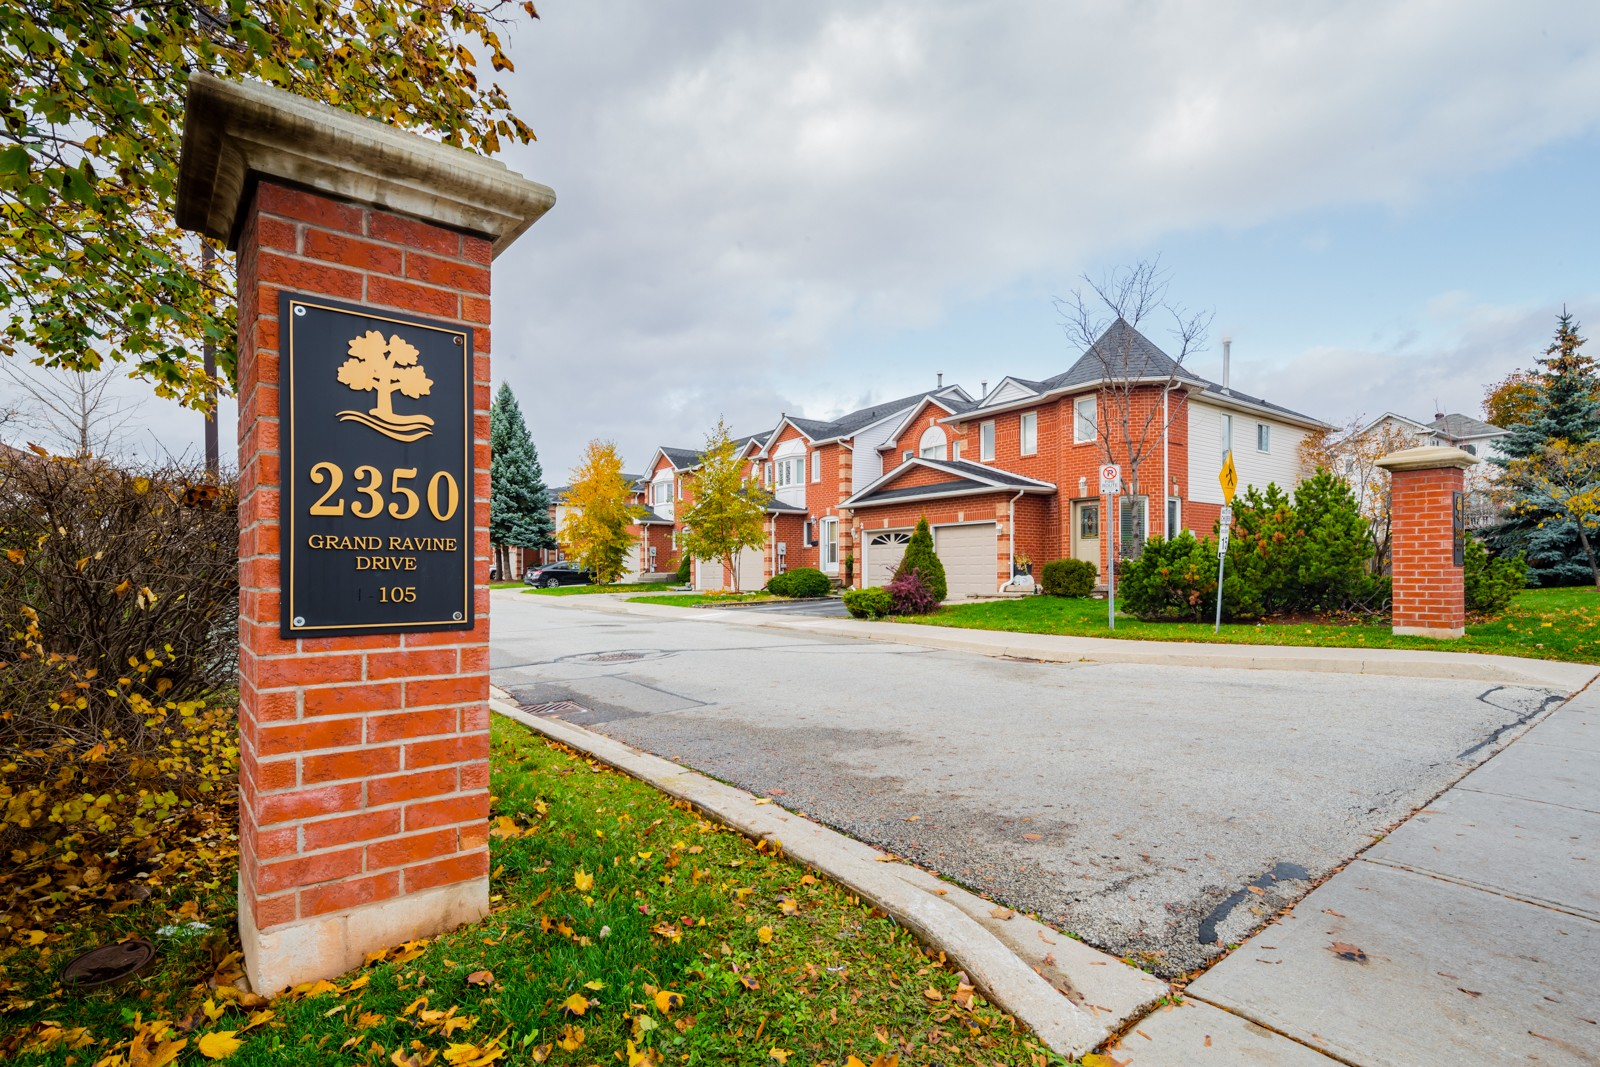 2350 Grand Ravine Dr Townhouses at 2350 Grand Ravine Dr, Oakville 0